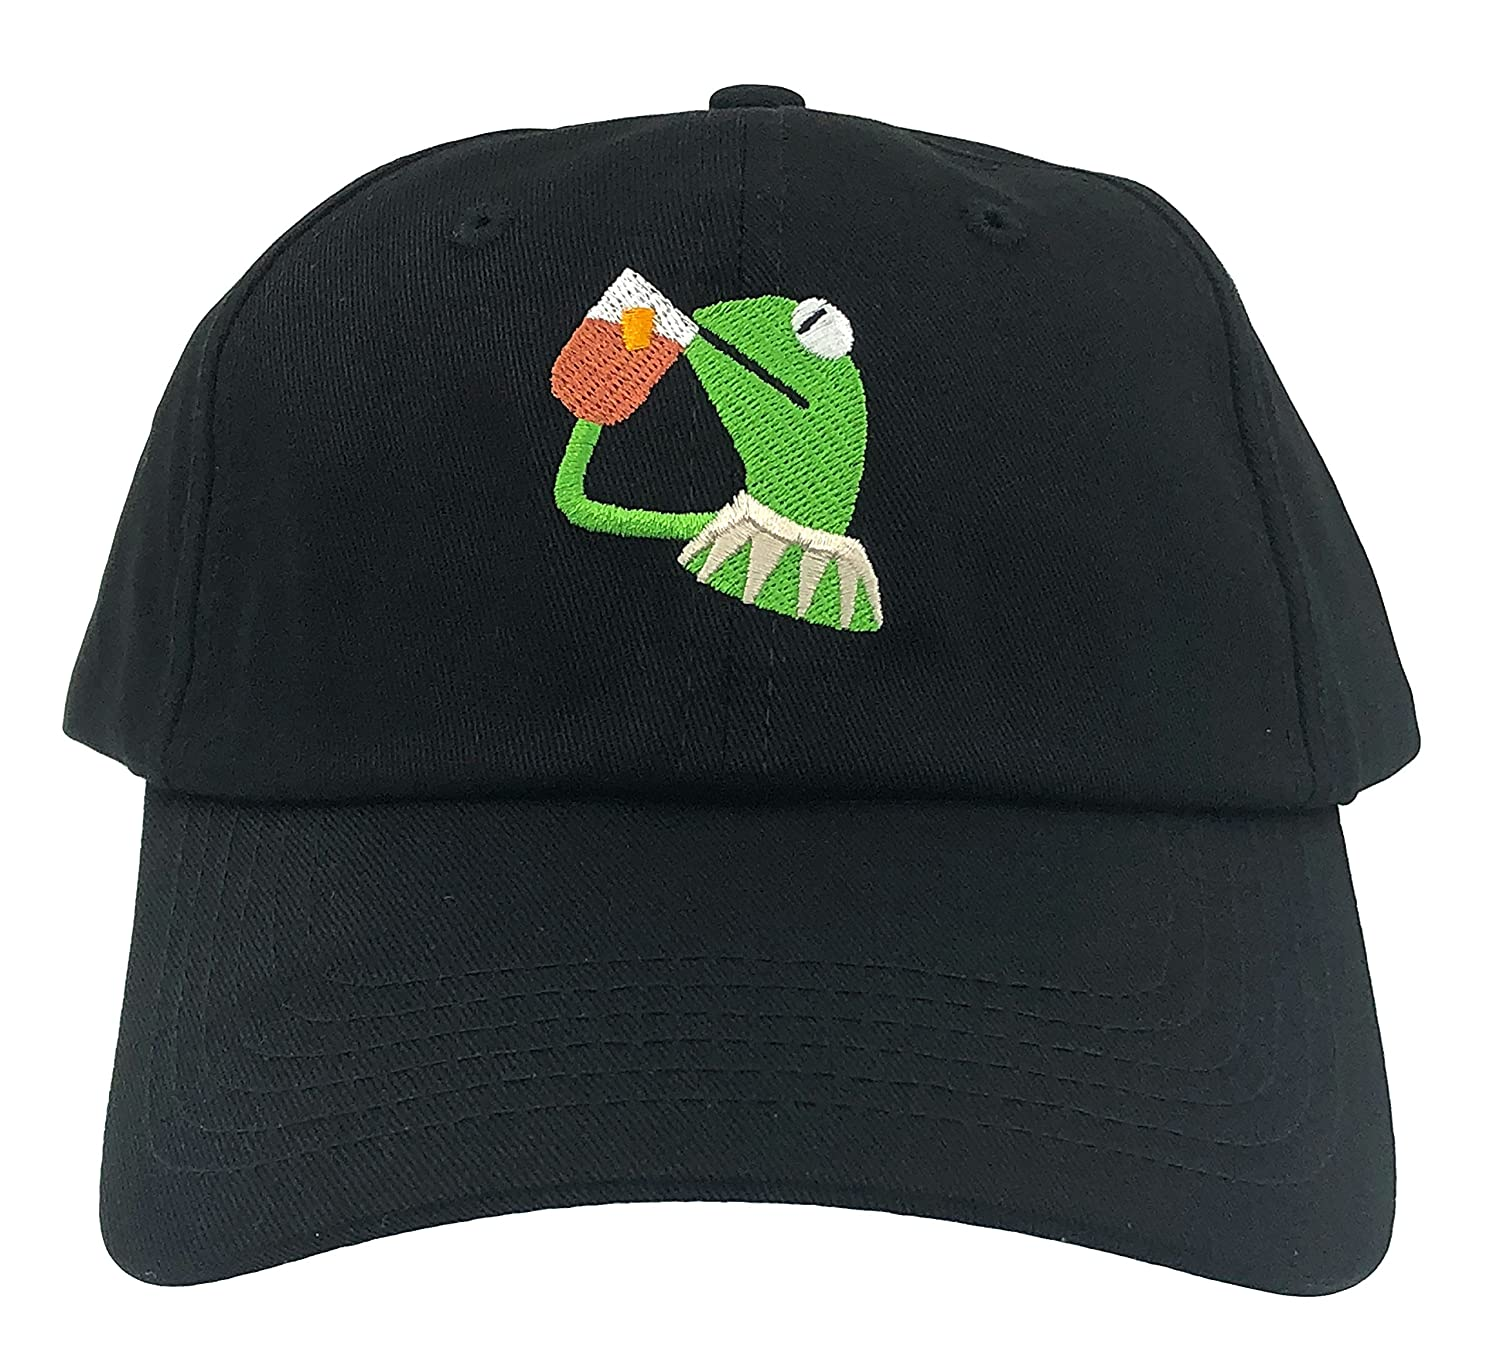 73ba1d743ed87 Amazon.com  SYWHPS Kermit The Frog Dad Hat Cap Sipping Sips Drinking Tea  Champion Lebron Costume (Black)  Sports   Outdoors